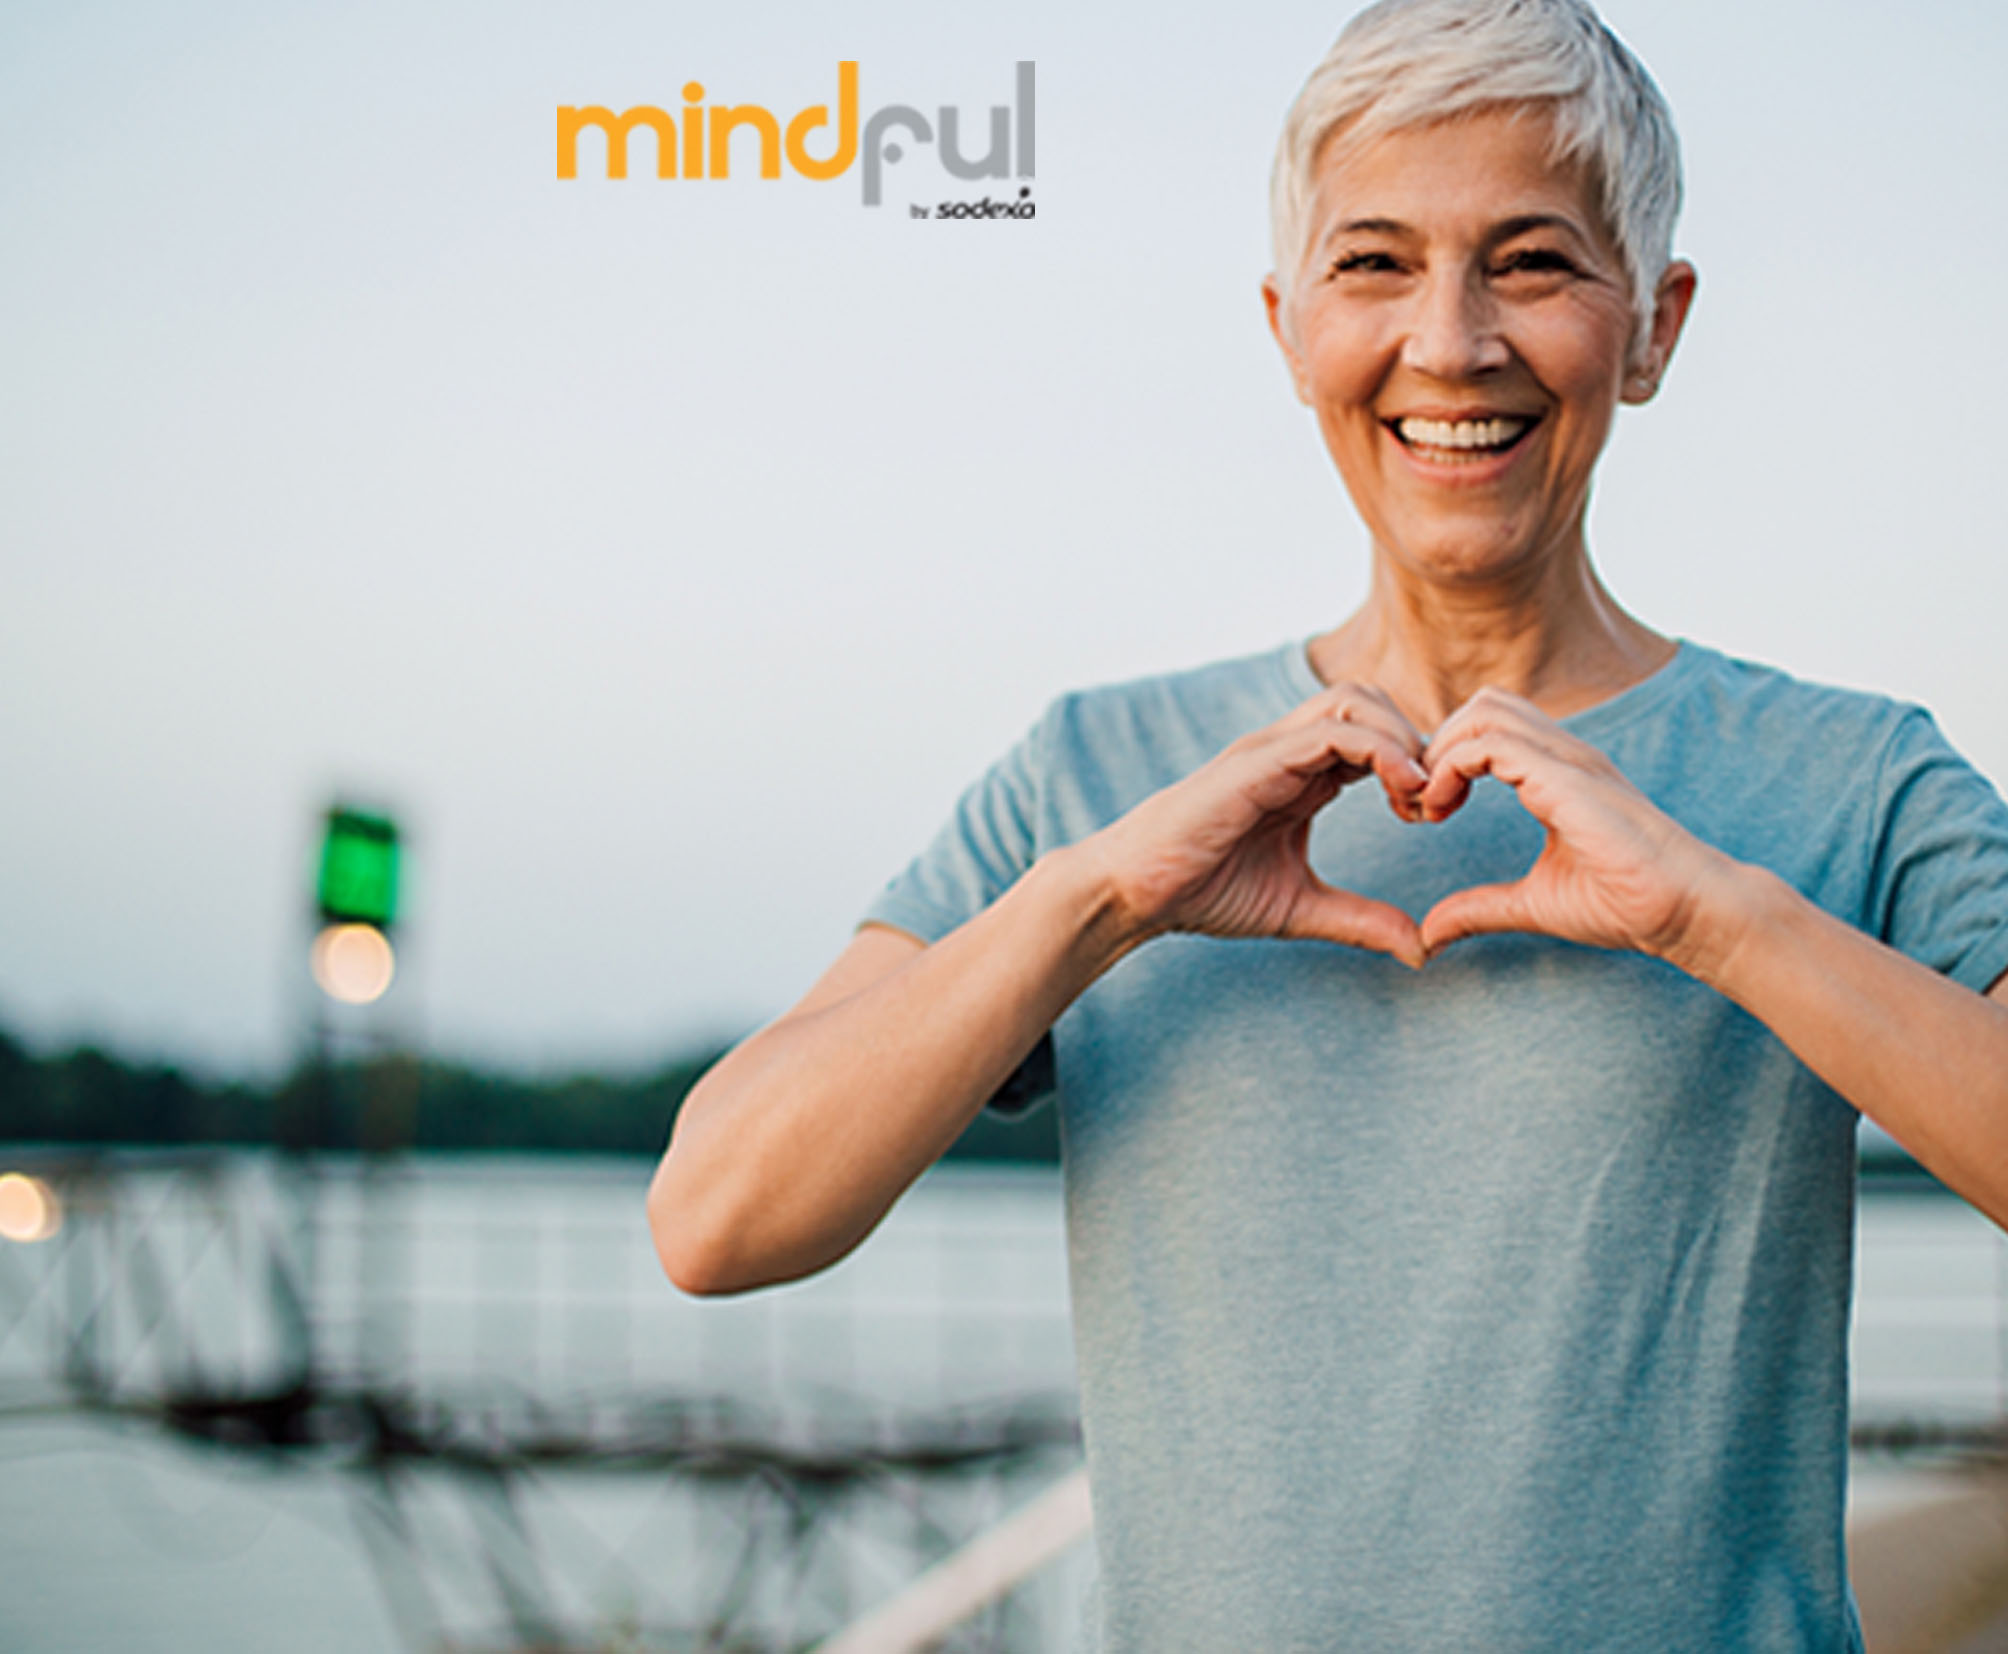 Making Mindful Yours